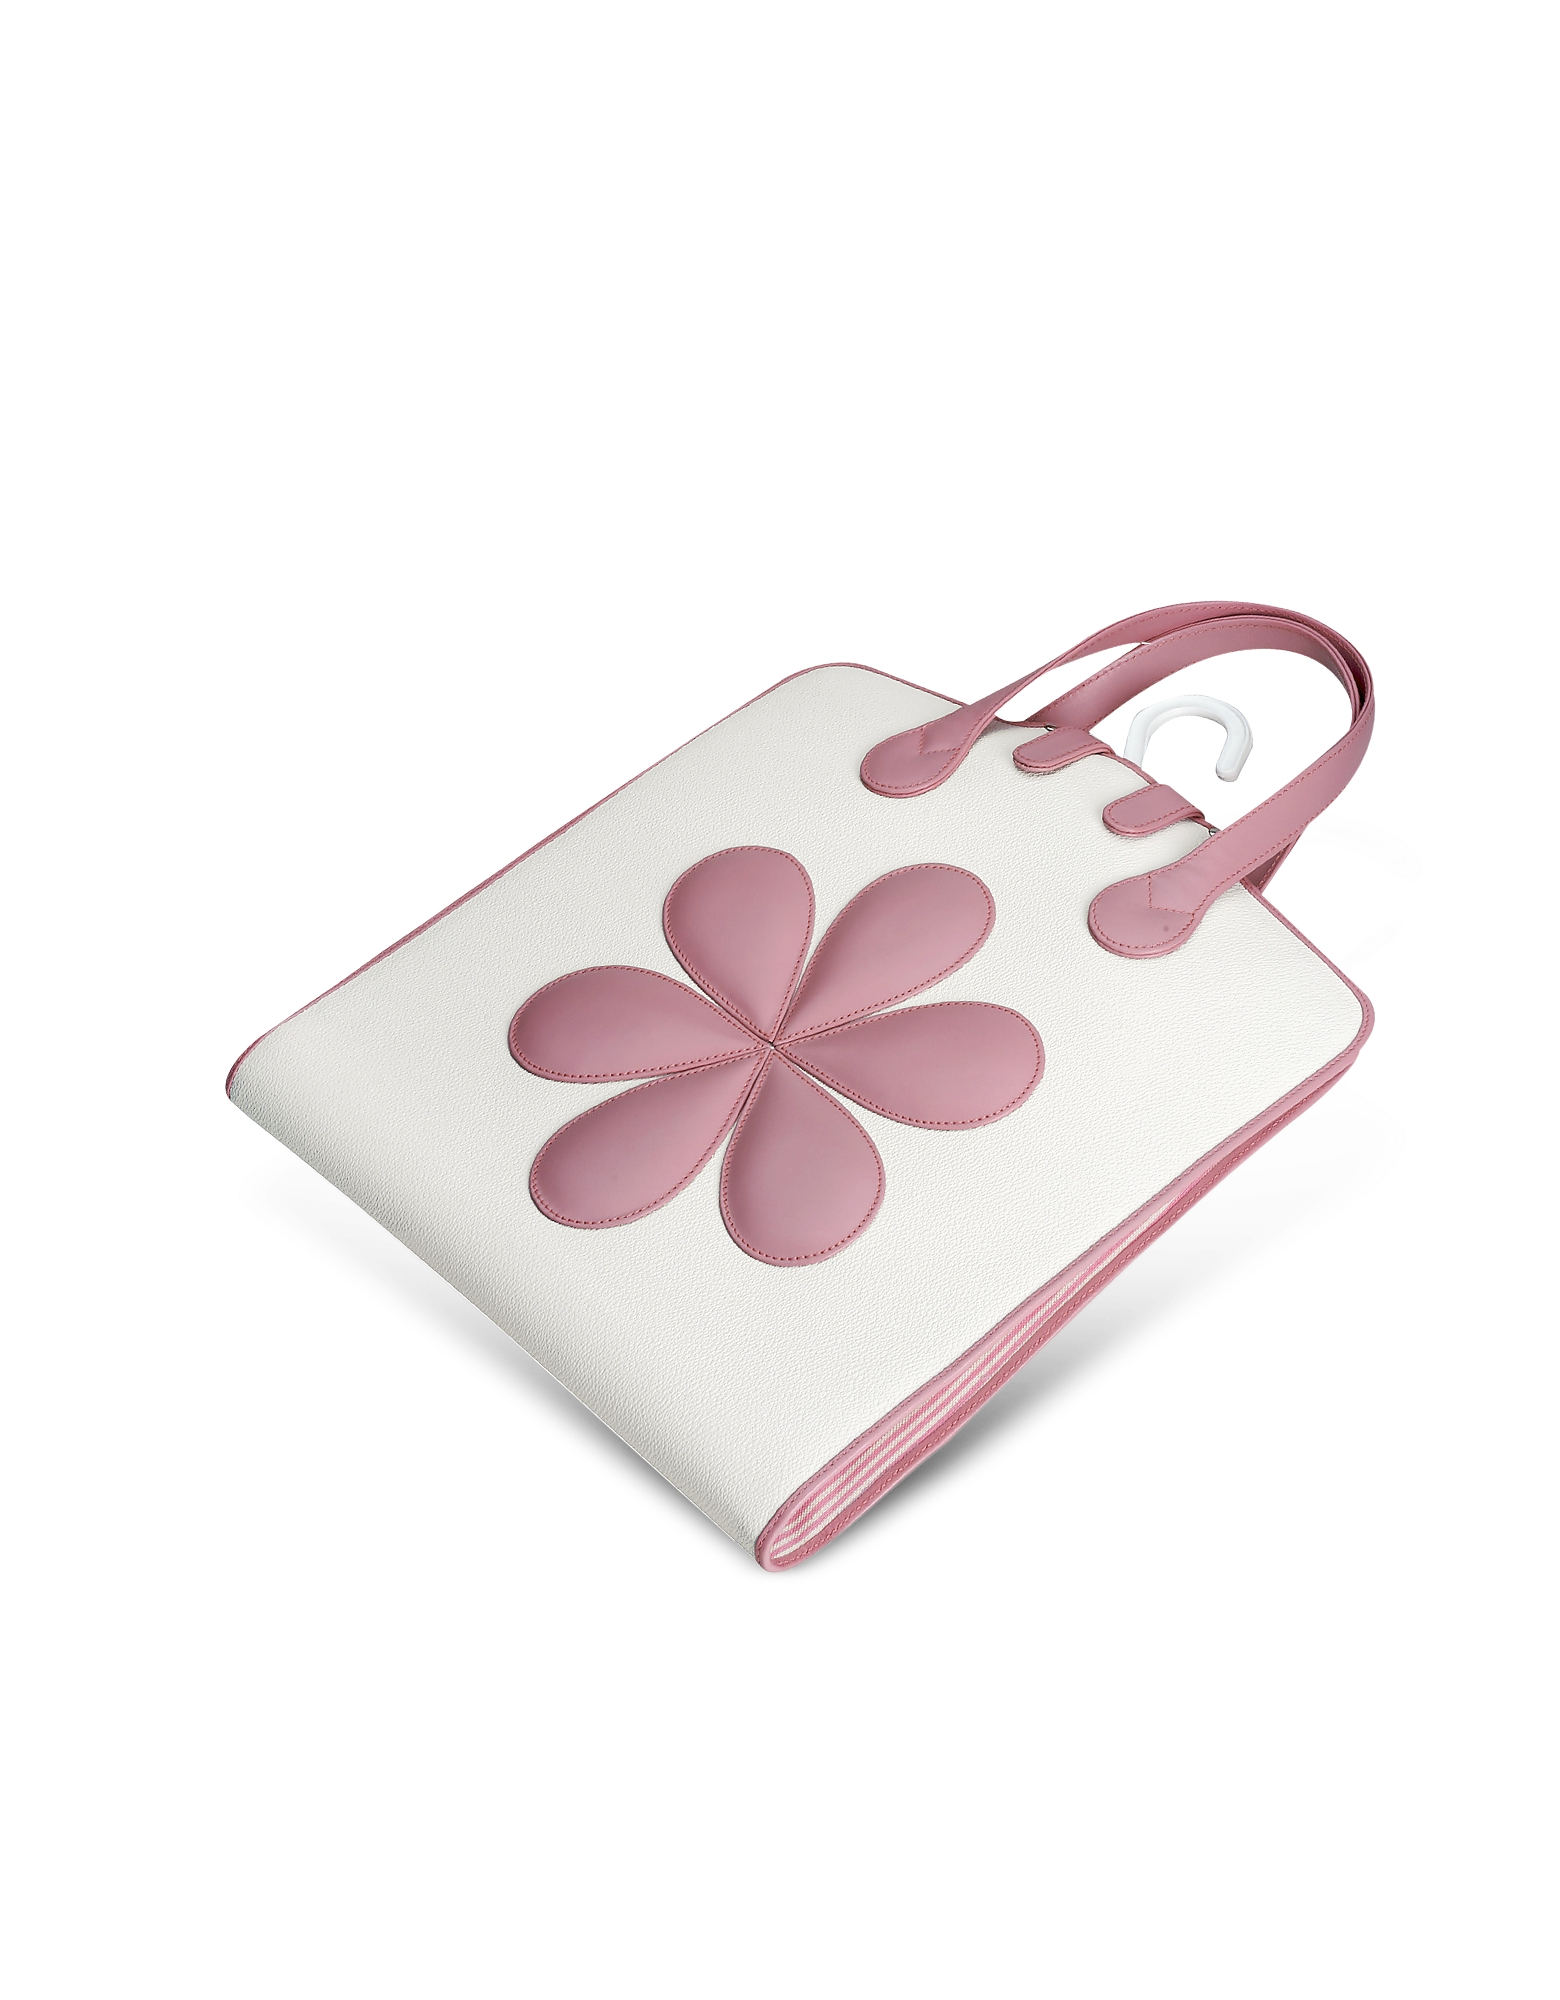 Pineider Travel Bags, Pink Flower Baby Garment Bag